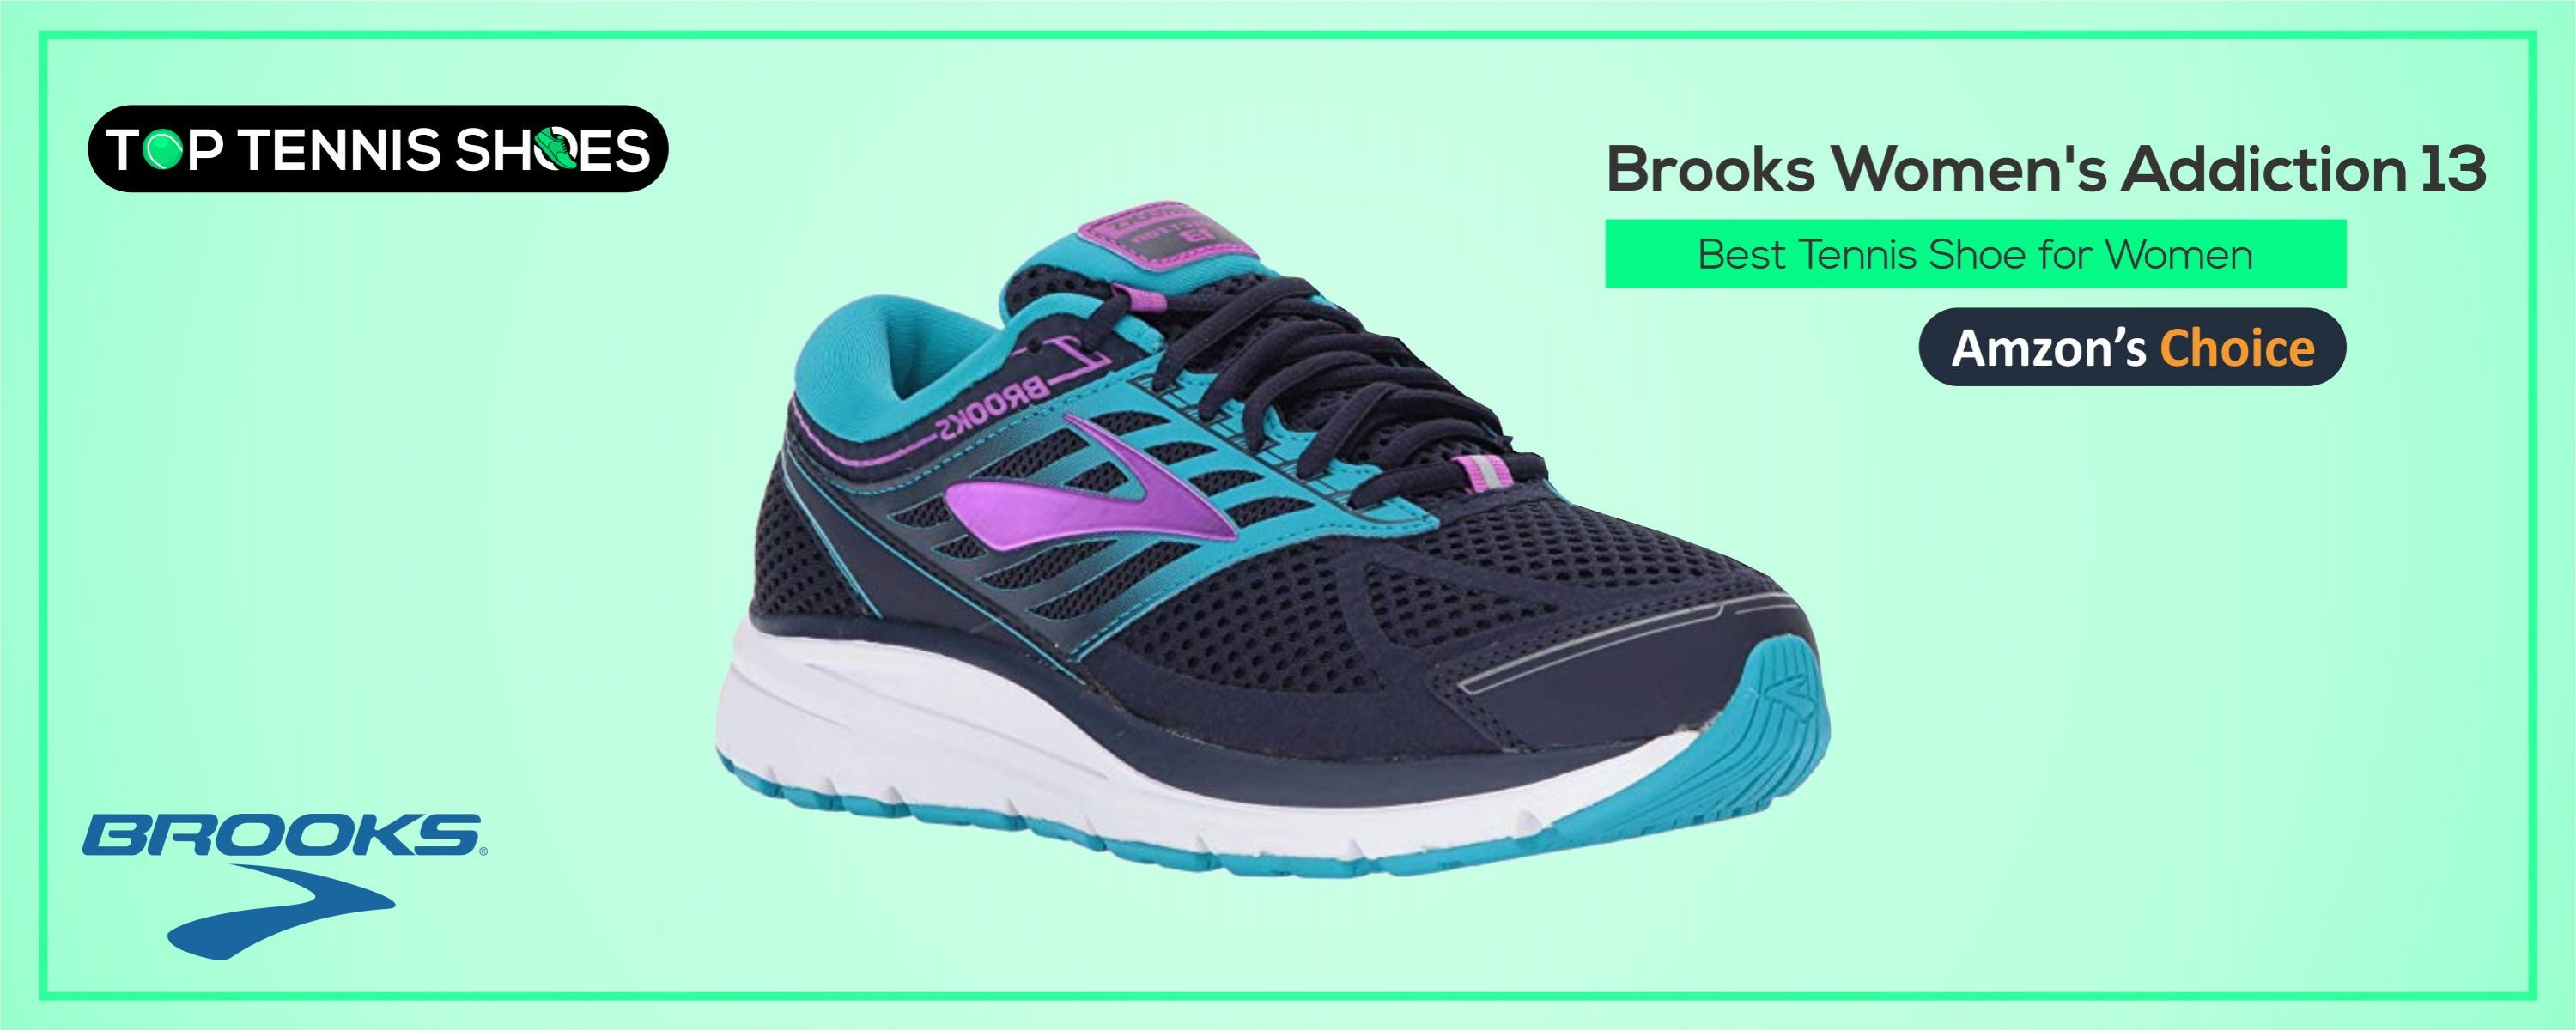 Women Tennis Shoe for ankle